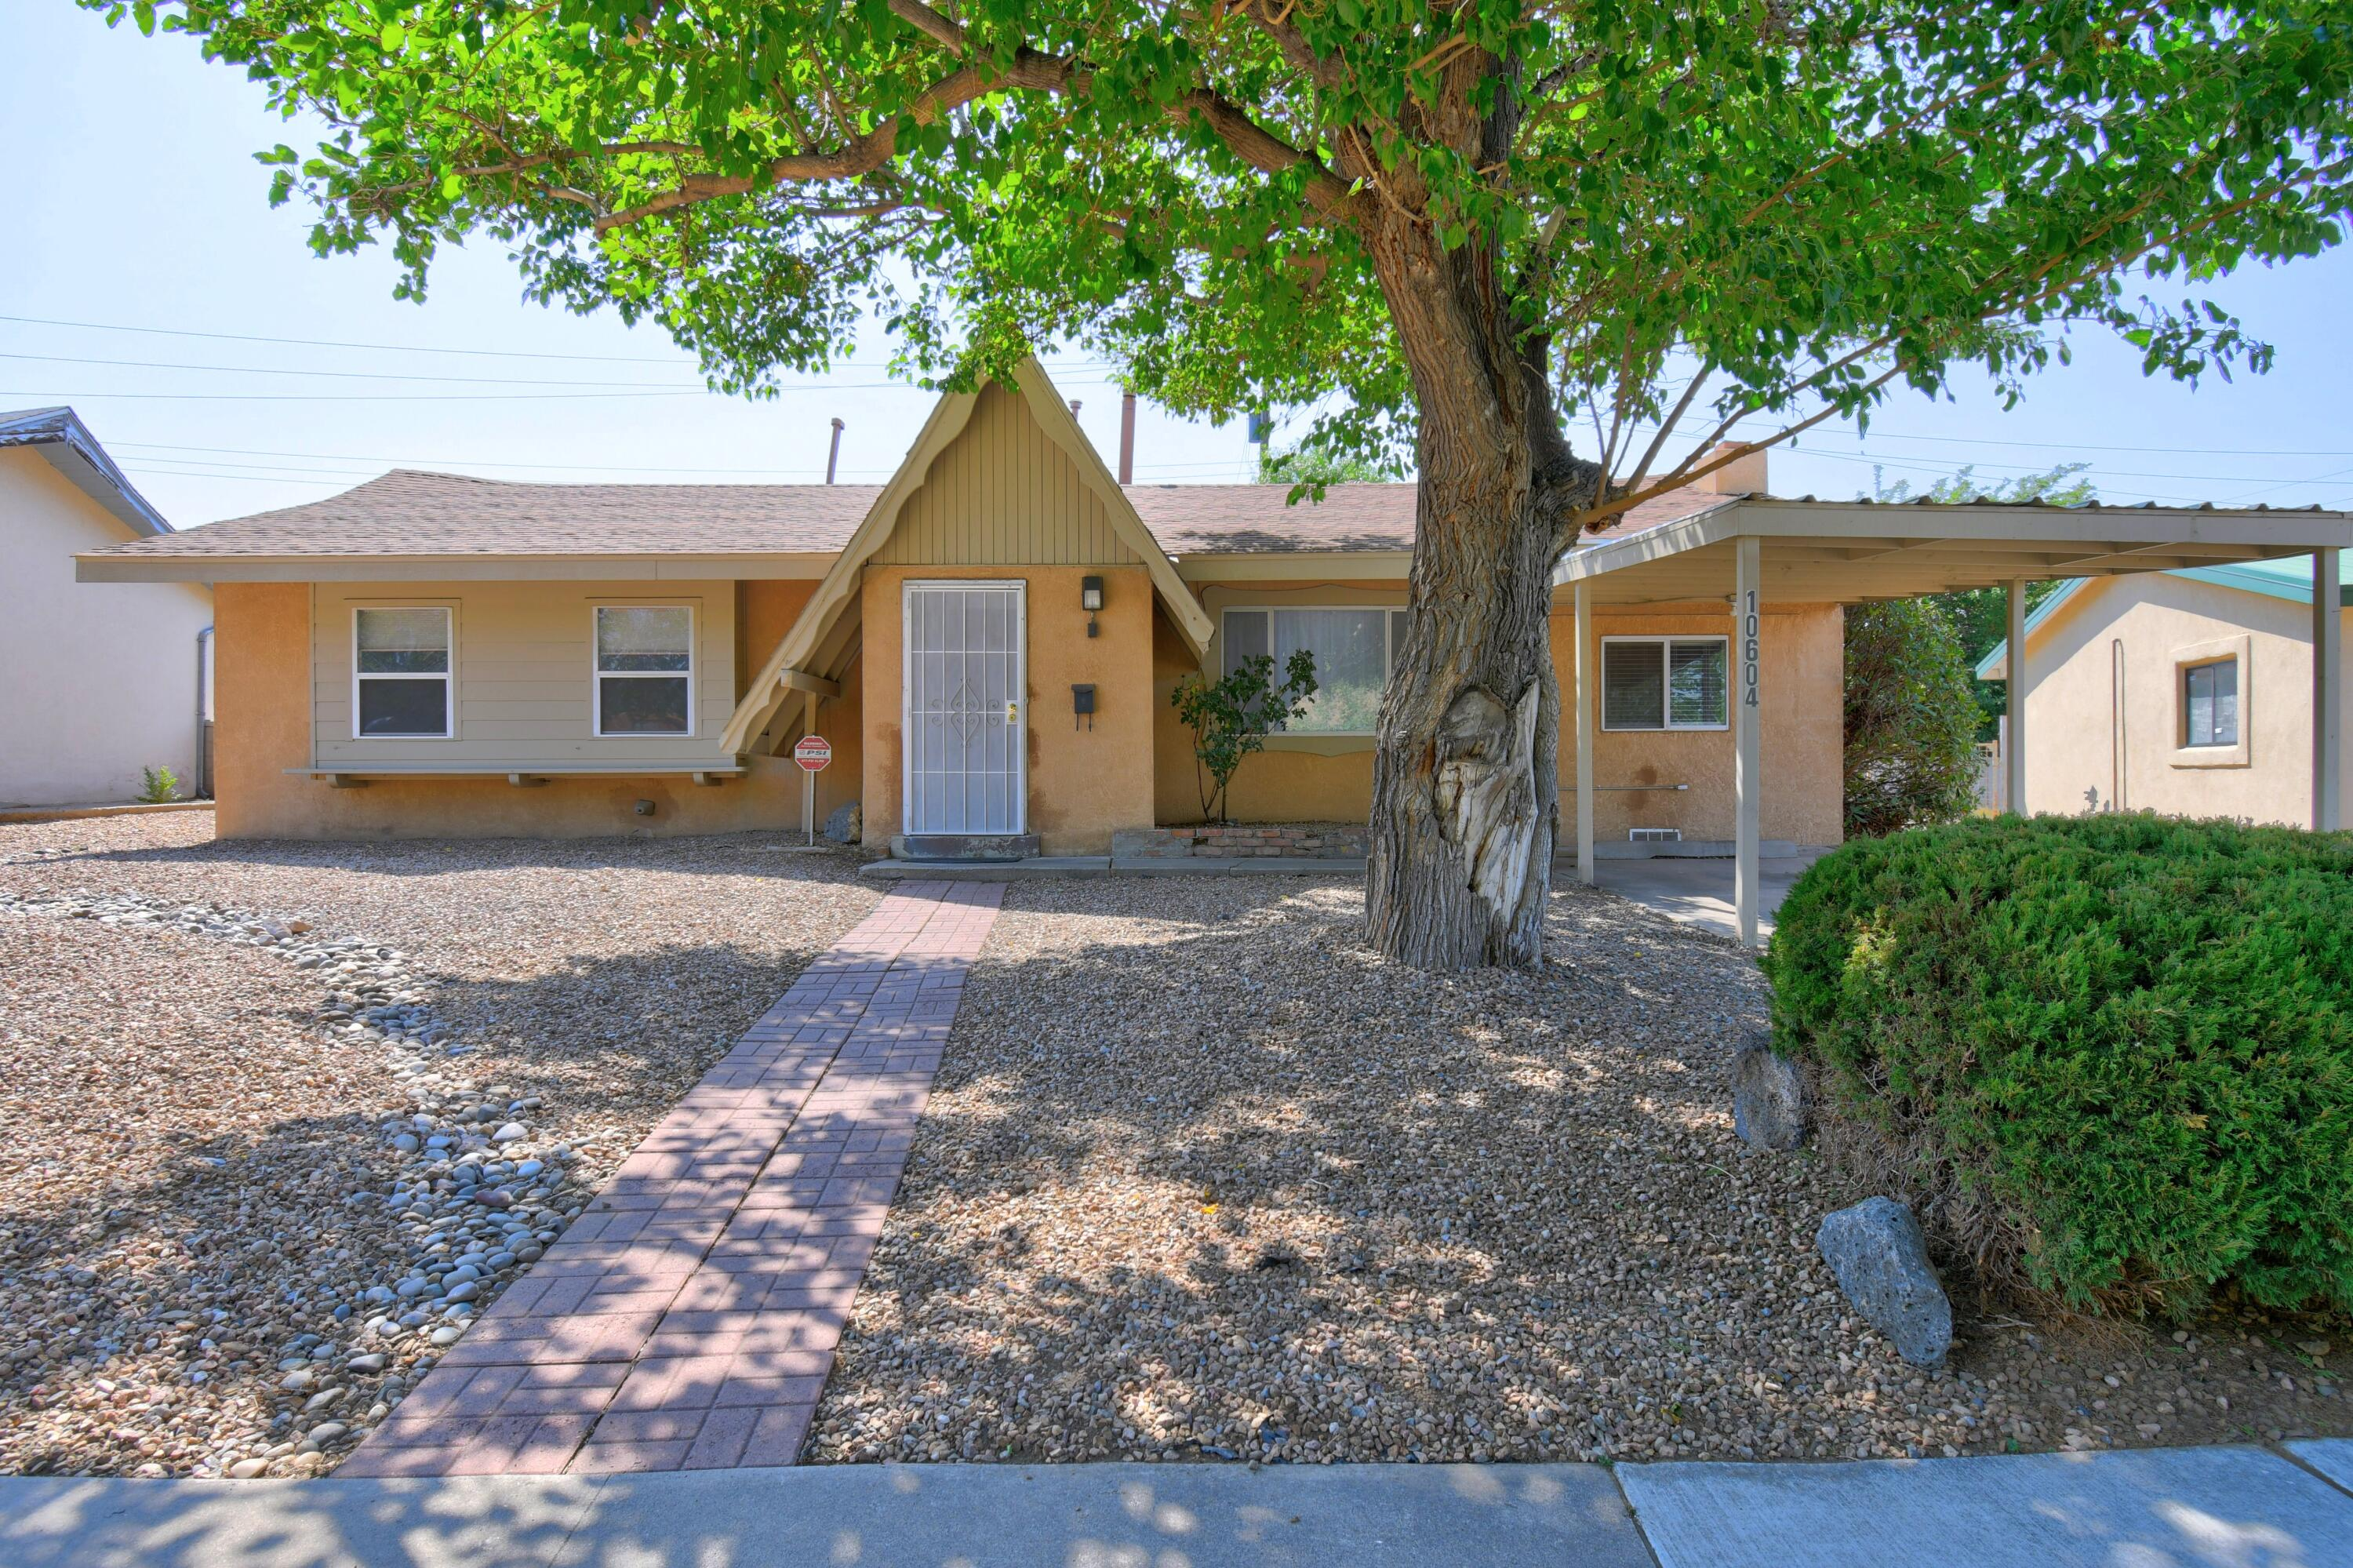 Buyer backed out 3 days before closing! Move right in! Plenty of updates including fresh paint, Master cool May 2021,  carpet July 2021, heater Nov. 2020 & Sept 2021, water heater 2017, updated windows and electric. Warm up to the cozy fireplace in the cold winter months and enjoy the nice size backyard with covered patio. Great for relaxing or barbecuing. Easy access to freeway, shopping.